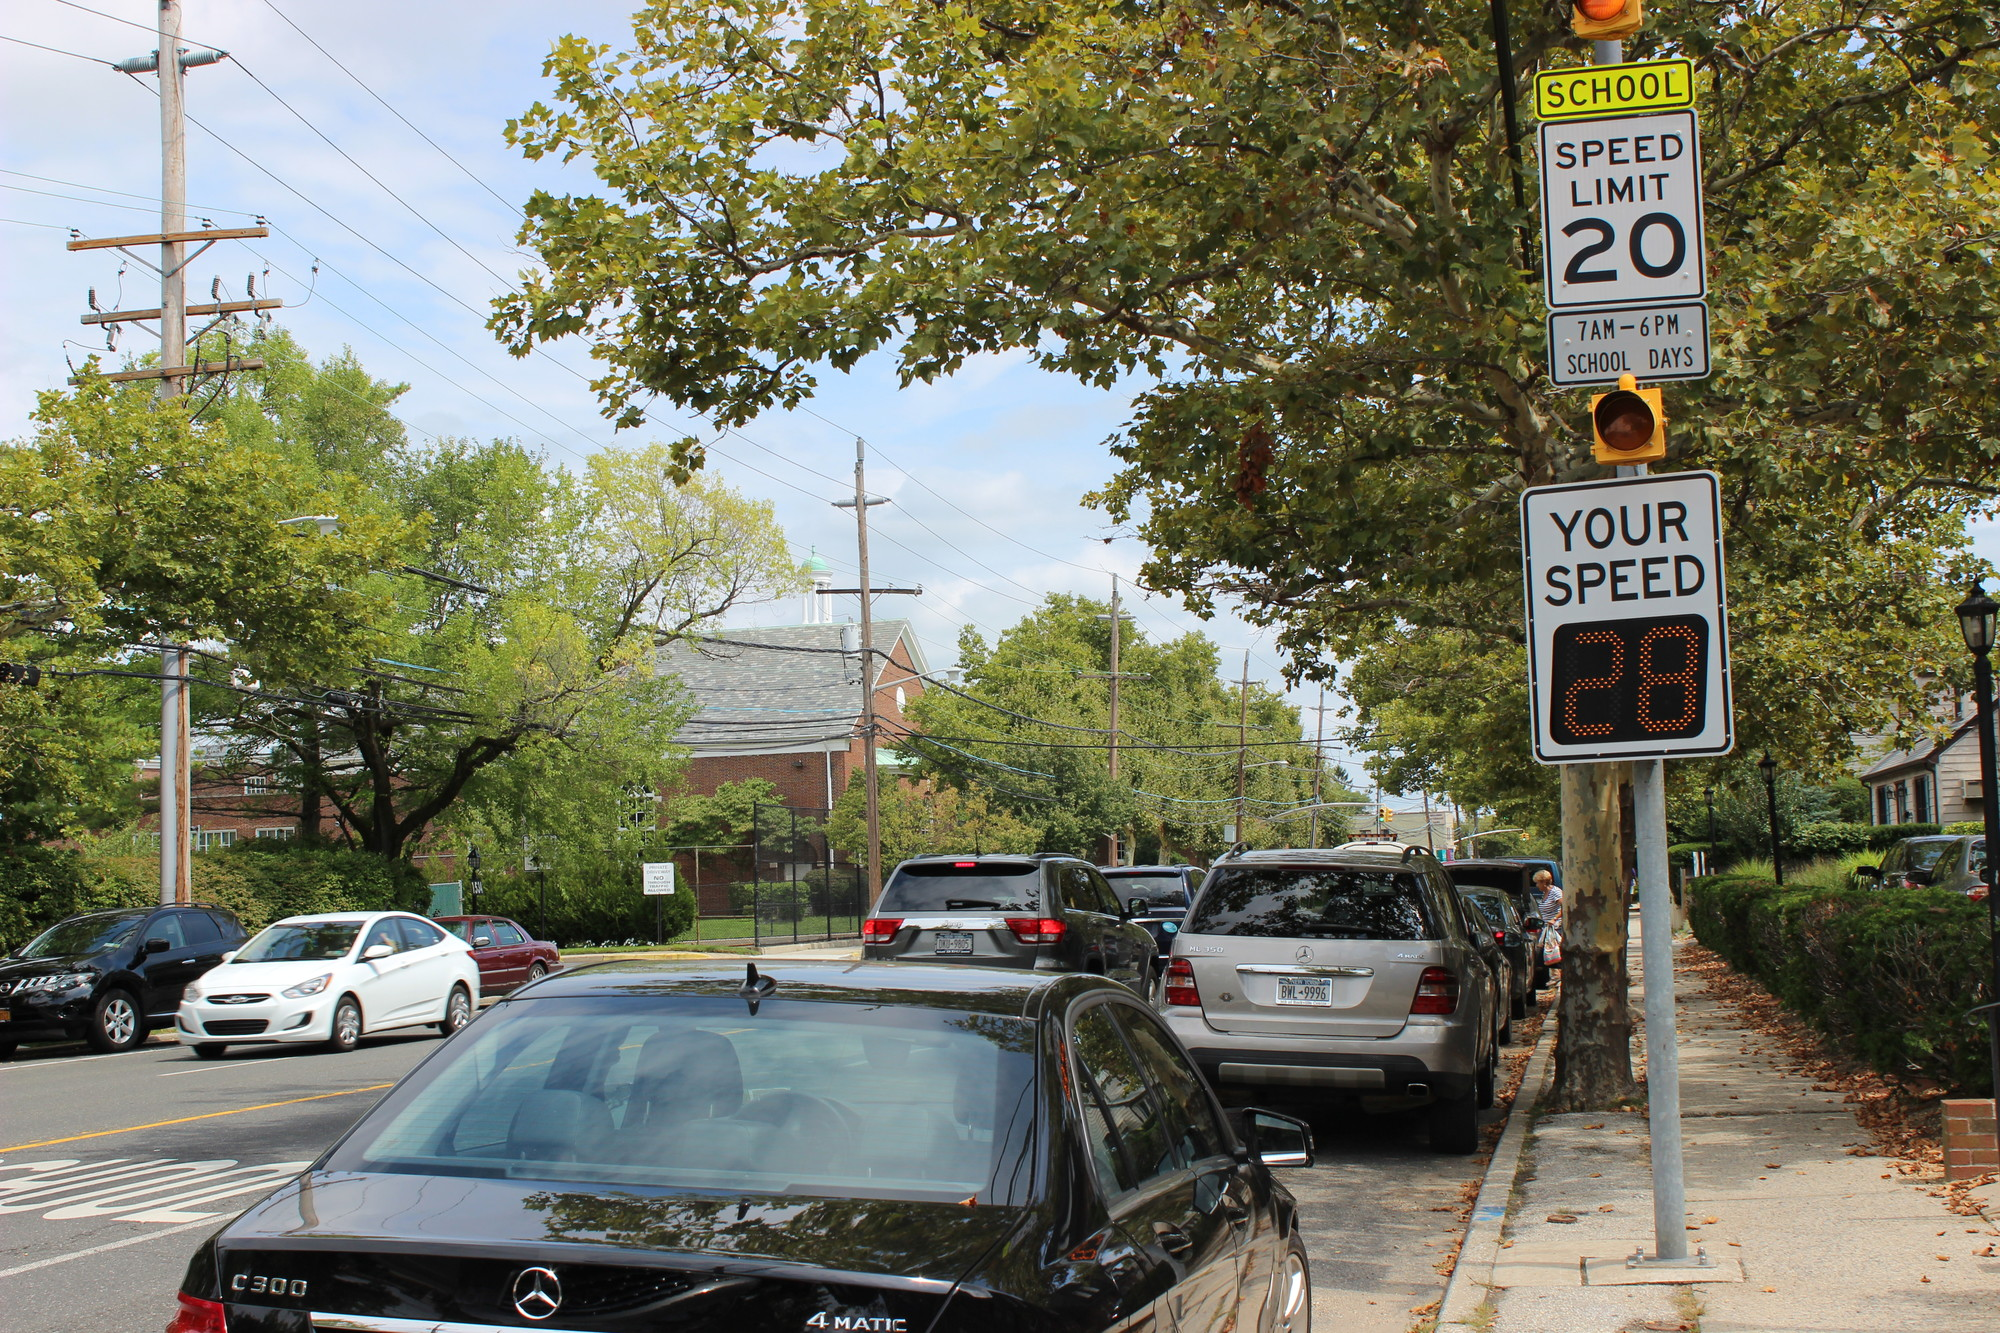 Hewlett-Woodmere School District officials had two speed monitors installed several years ago on Broadway. near Hewlett Elementary School, due to speeding motorists.